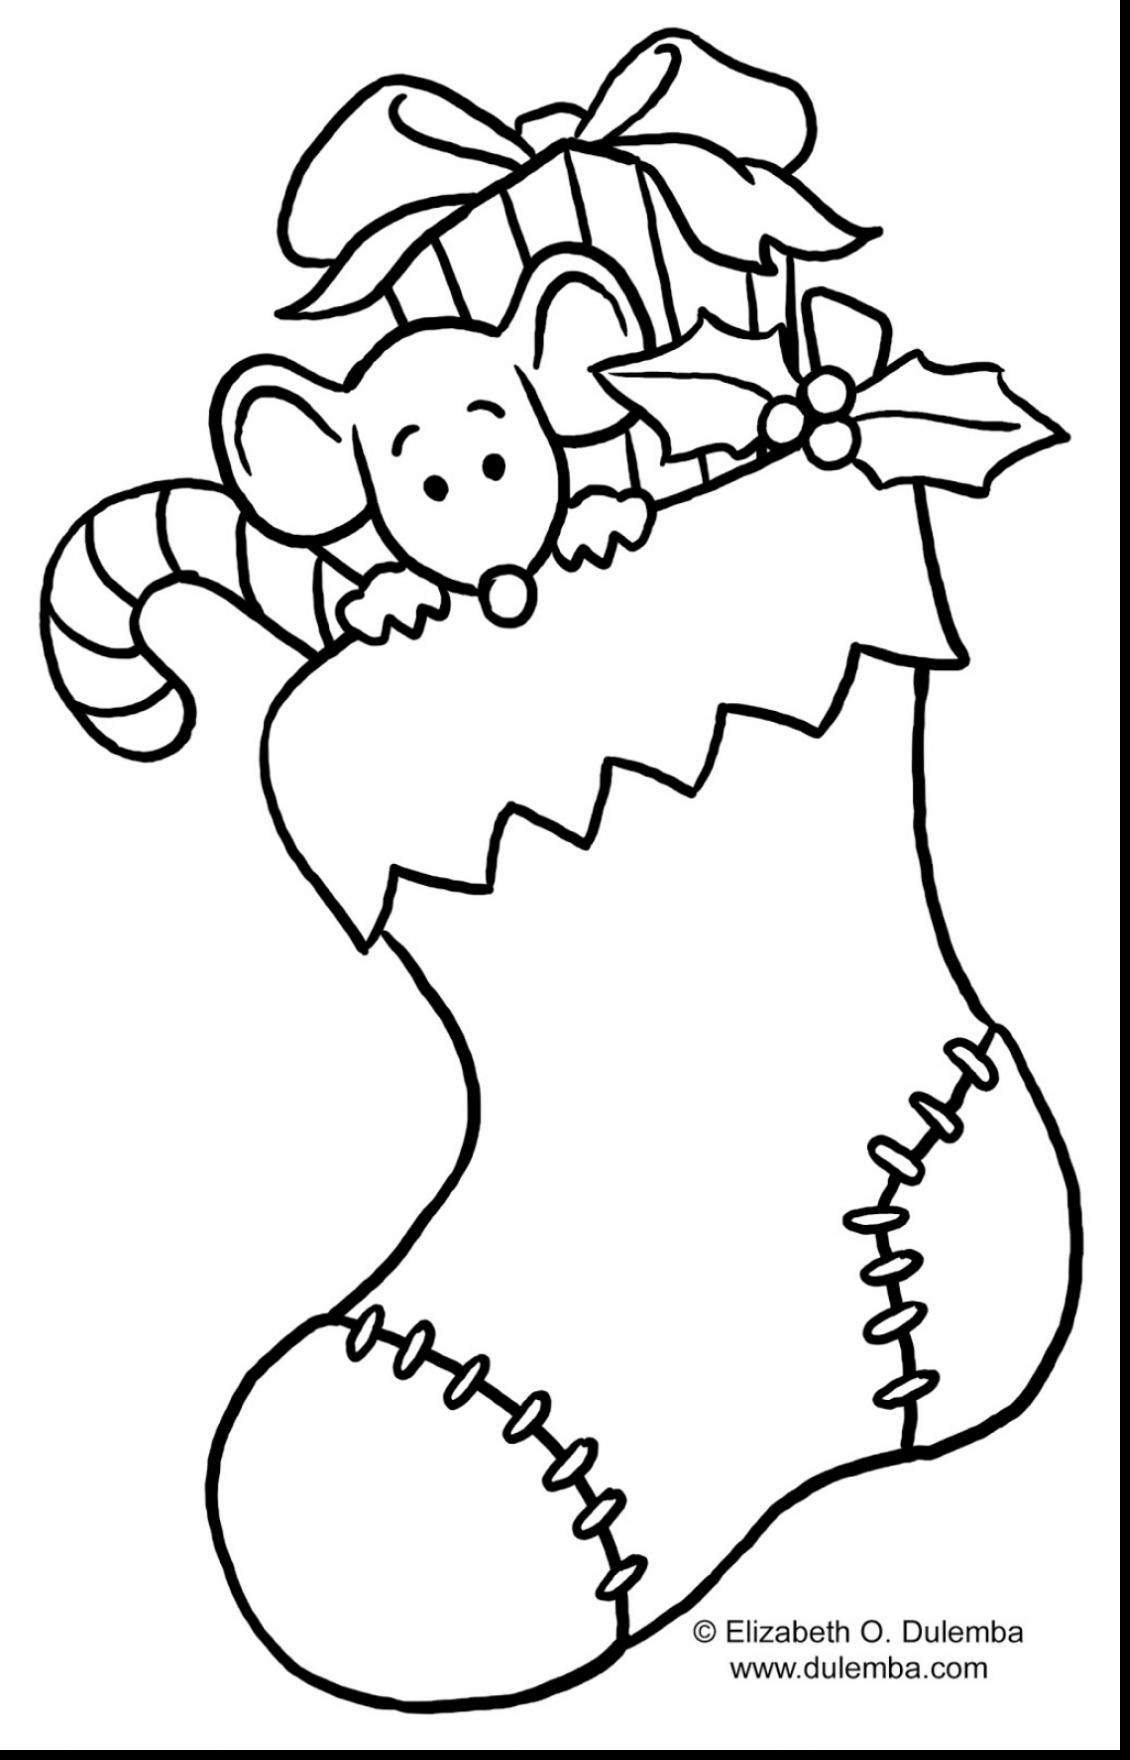 Free Printable Christmas Stocking Coloring Pages at ...